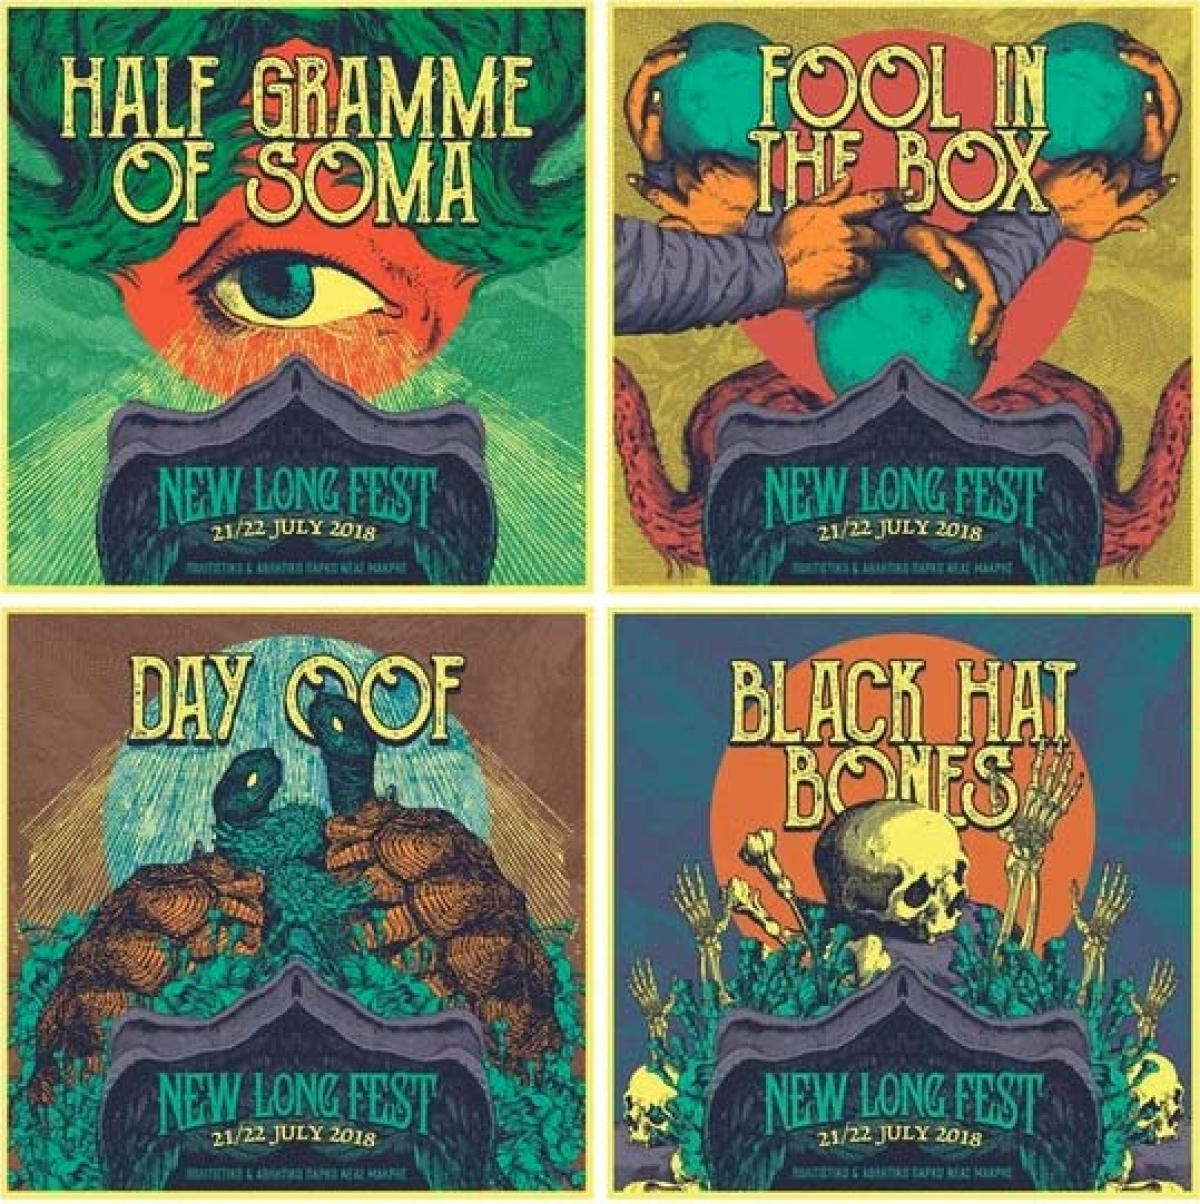 12 Ερωτήσεις πριν το New Long Fest - Half Gramme Of Soma, Black Hat Bones, Day Oof, Fool In The Box, (DAY 1, part 1)